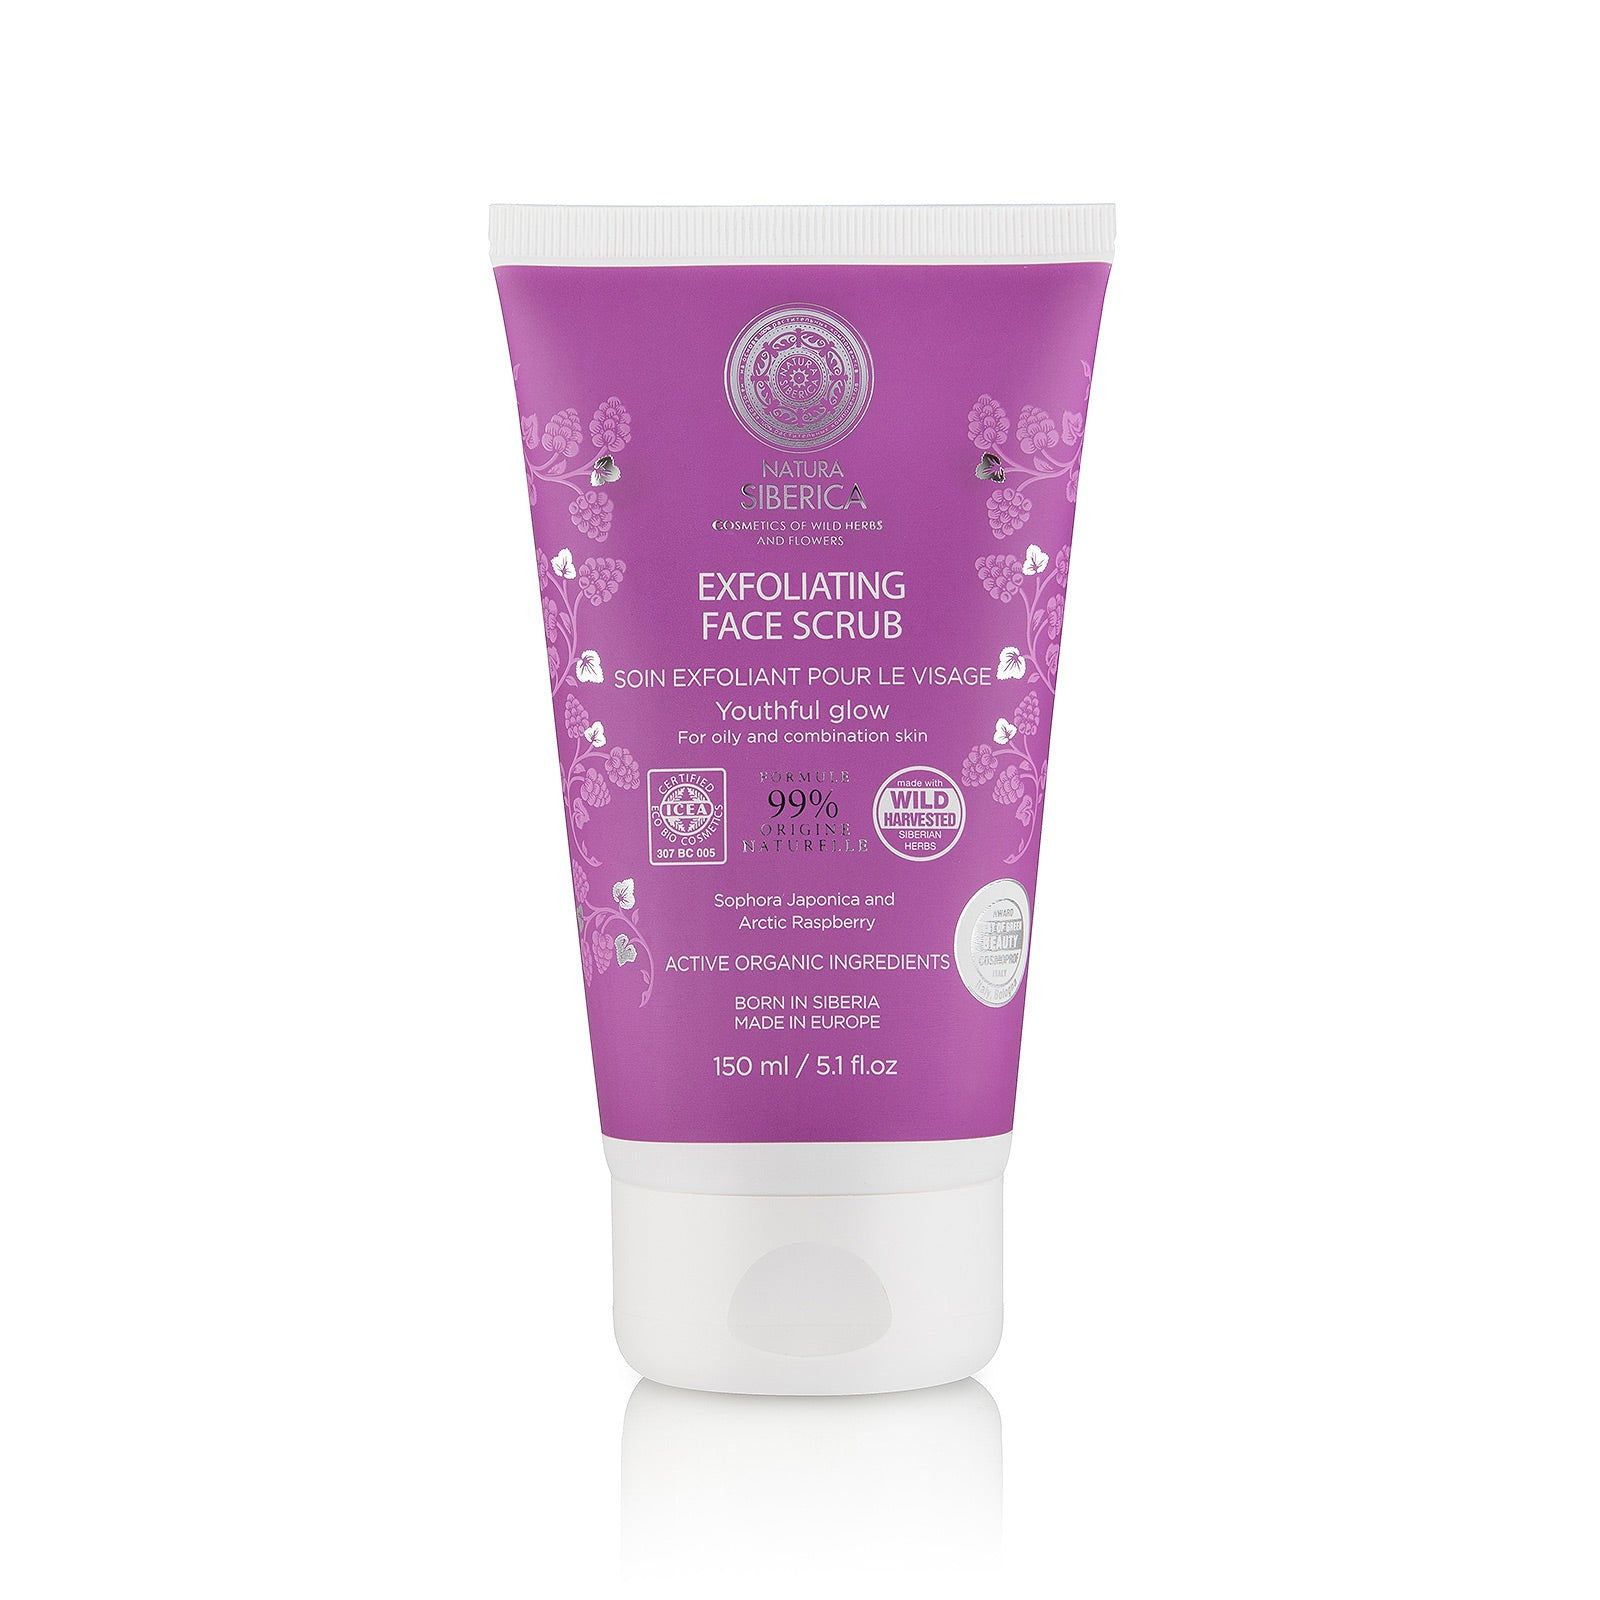 Exfoliating Face Scrub, 150 ml